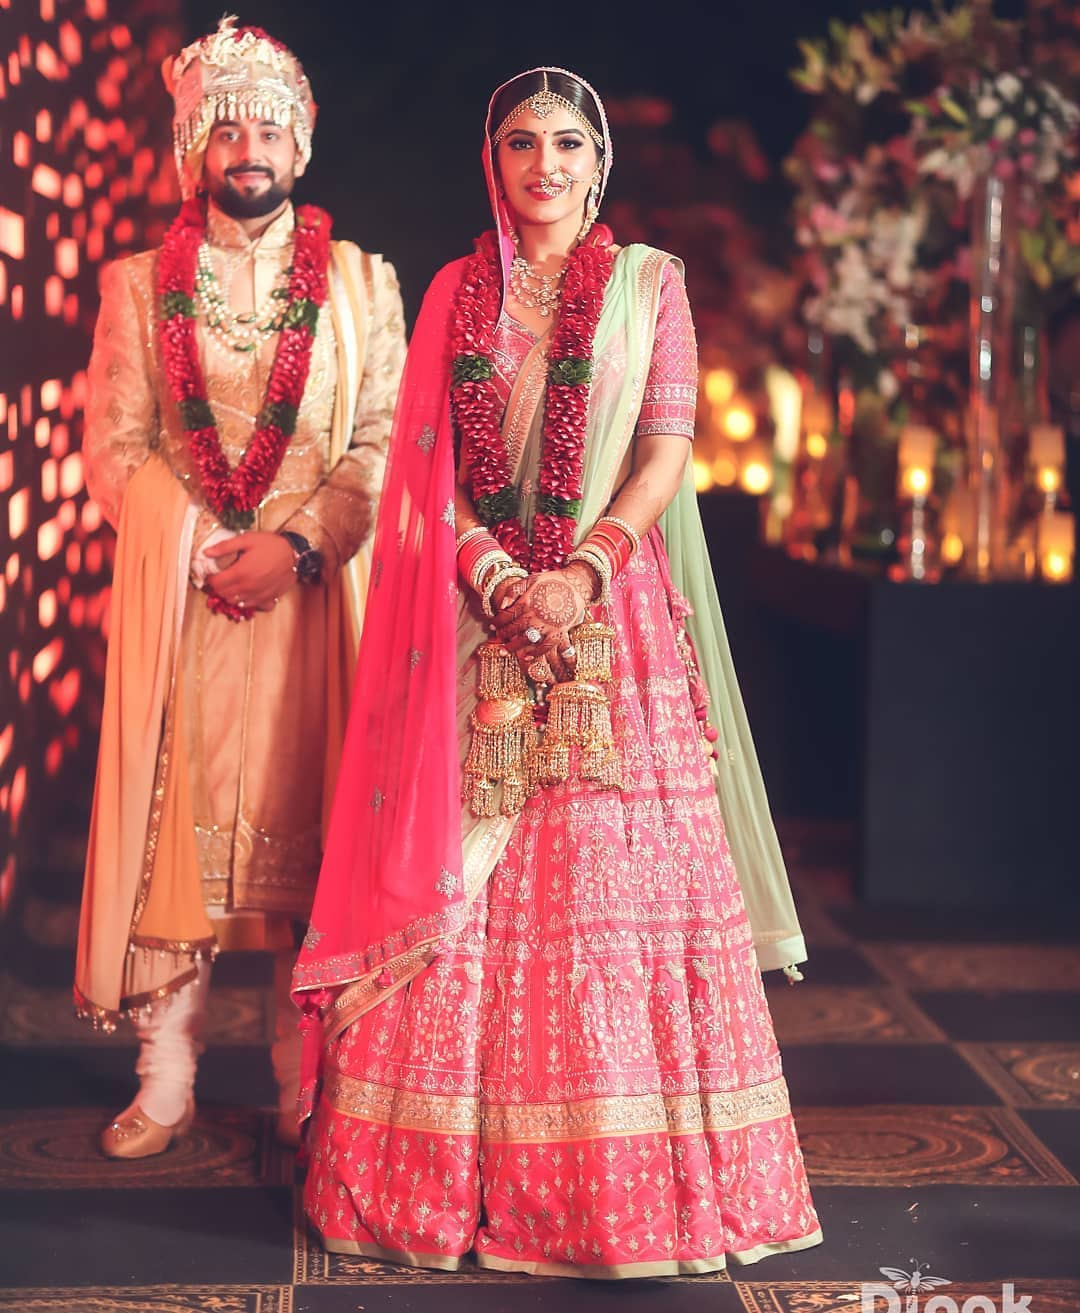 Baby pink and ivory combination: Bride and Groom Wedding Dress Colour Combinations